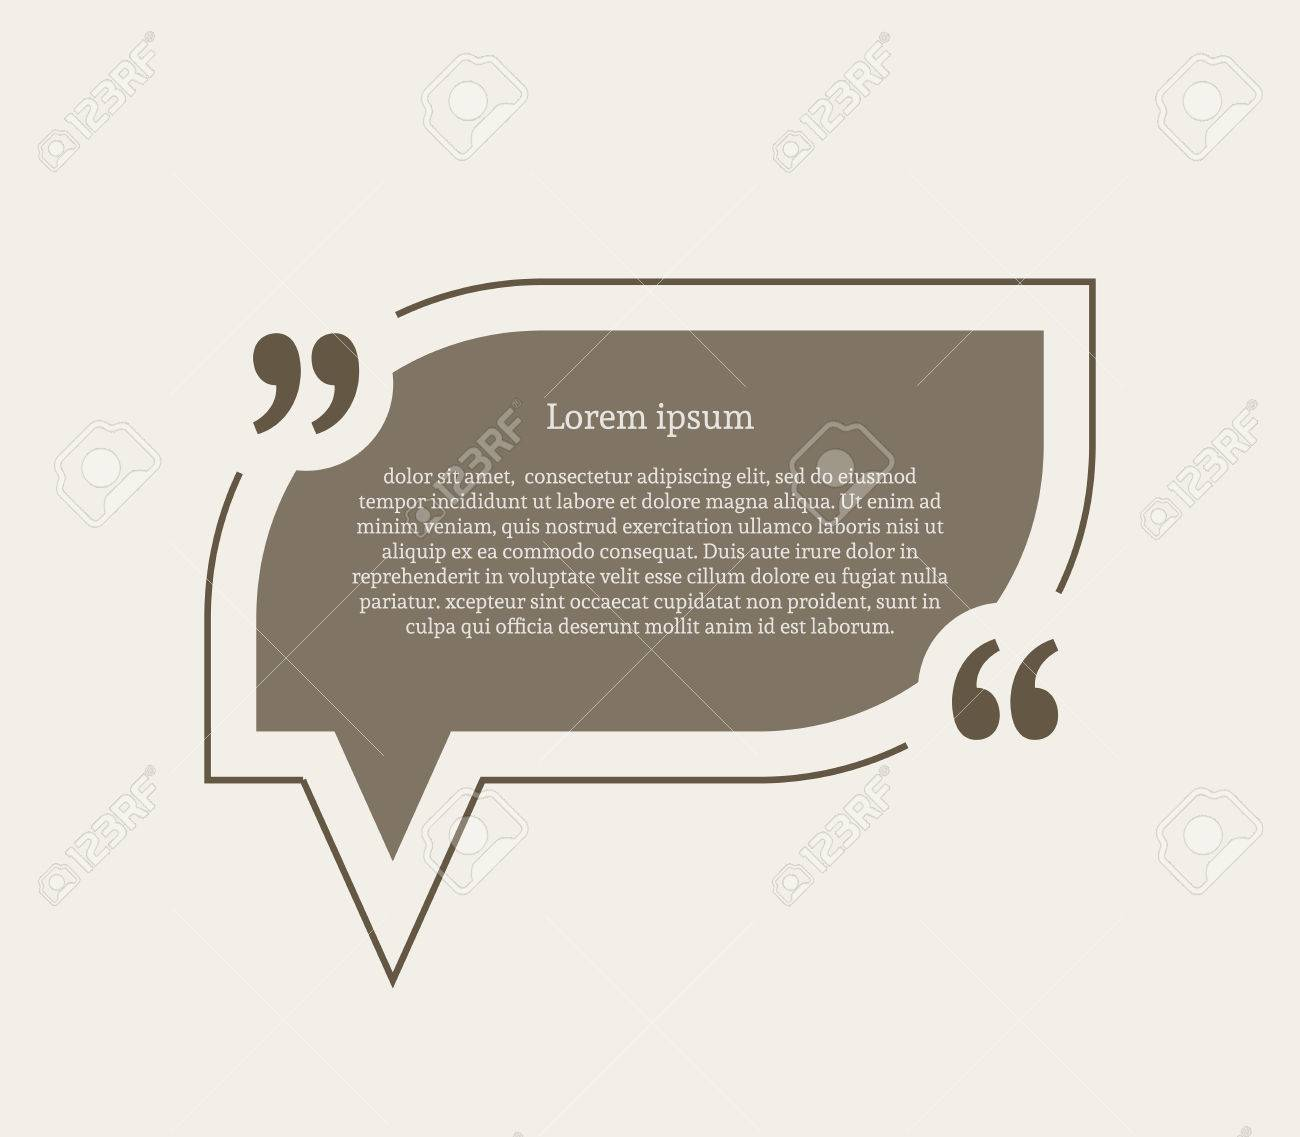 Quotation mark speech bubble empty quote blank citation template quotation mark speech bubble empty quote blank citation template rounded rectangle design element for reheart Images